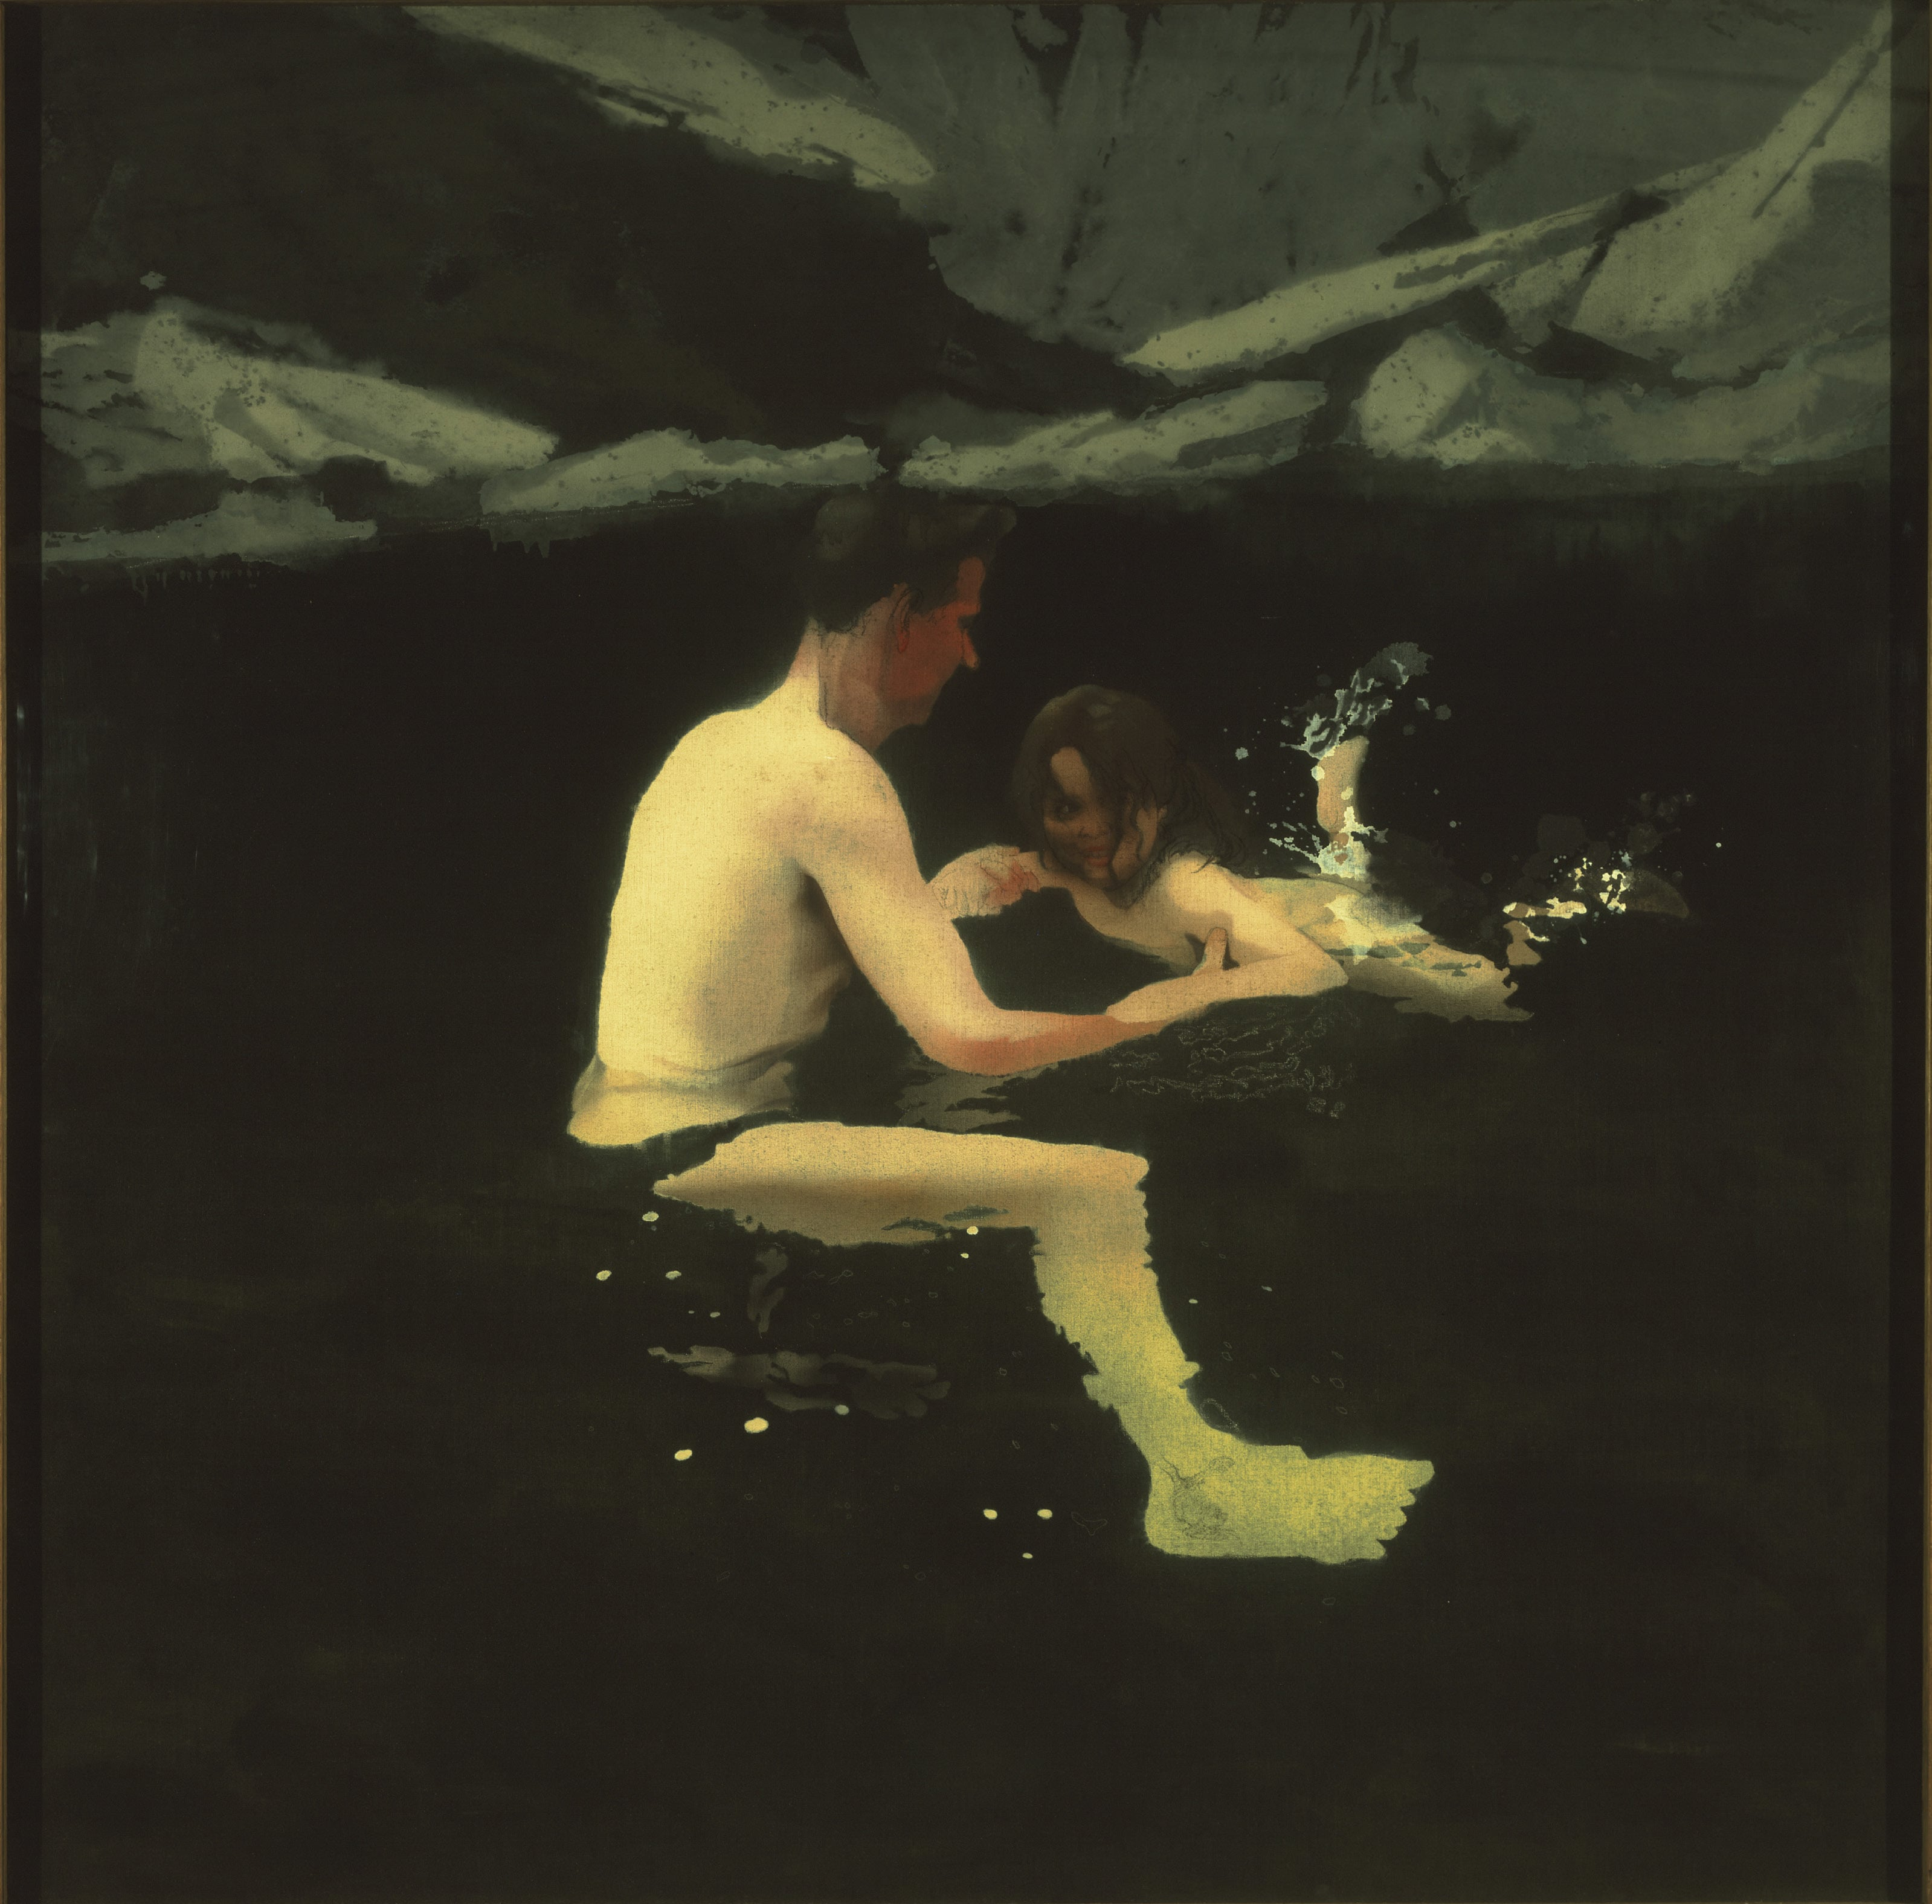 6. Michael Andrews, Melanie and Me Swimming, 1978-9, Tate - © The Estate of Michael Andrews, courtesy James Hyman Gallery, London. Image courtesy of Tate, London 2014